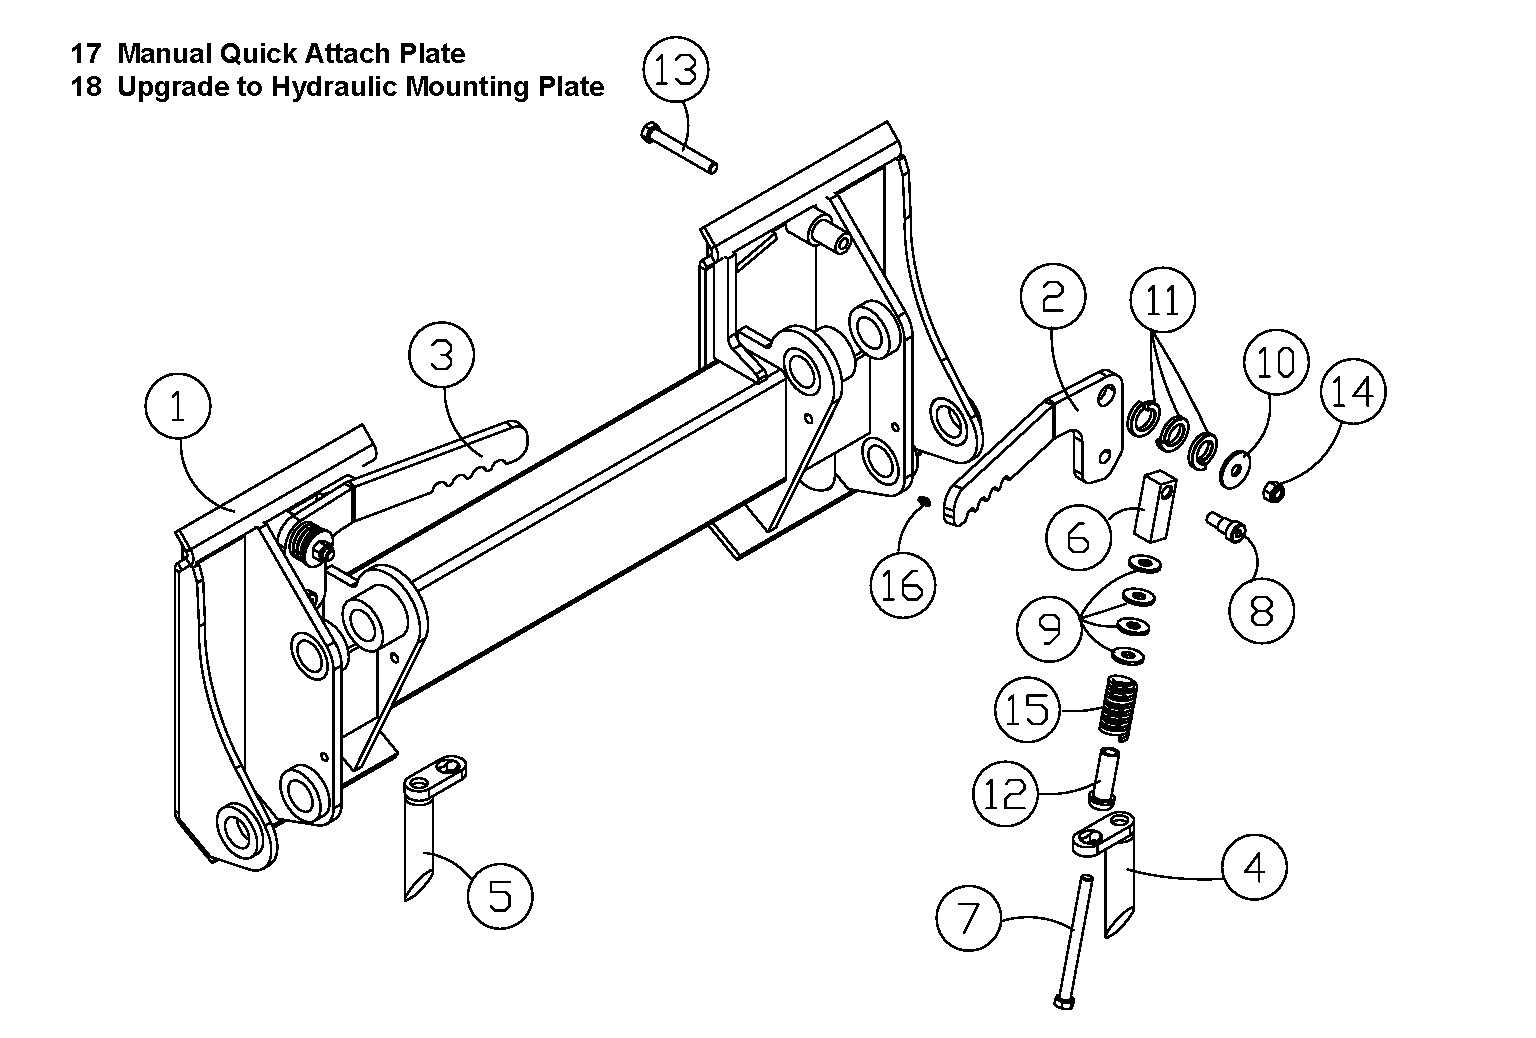 Diagram 8-1A Quick Attach Mounting Plate - Manual